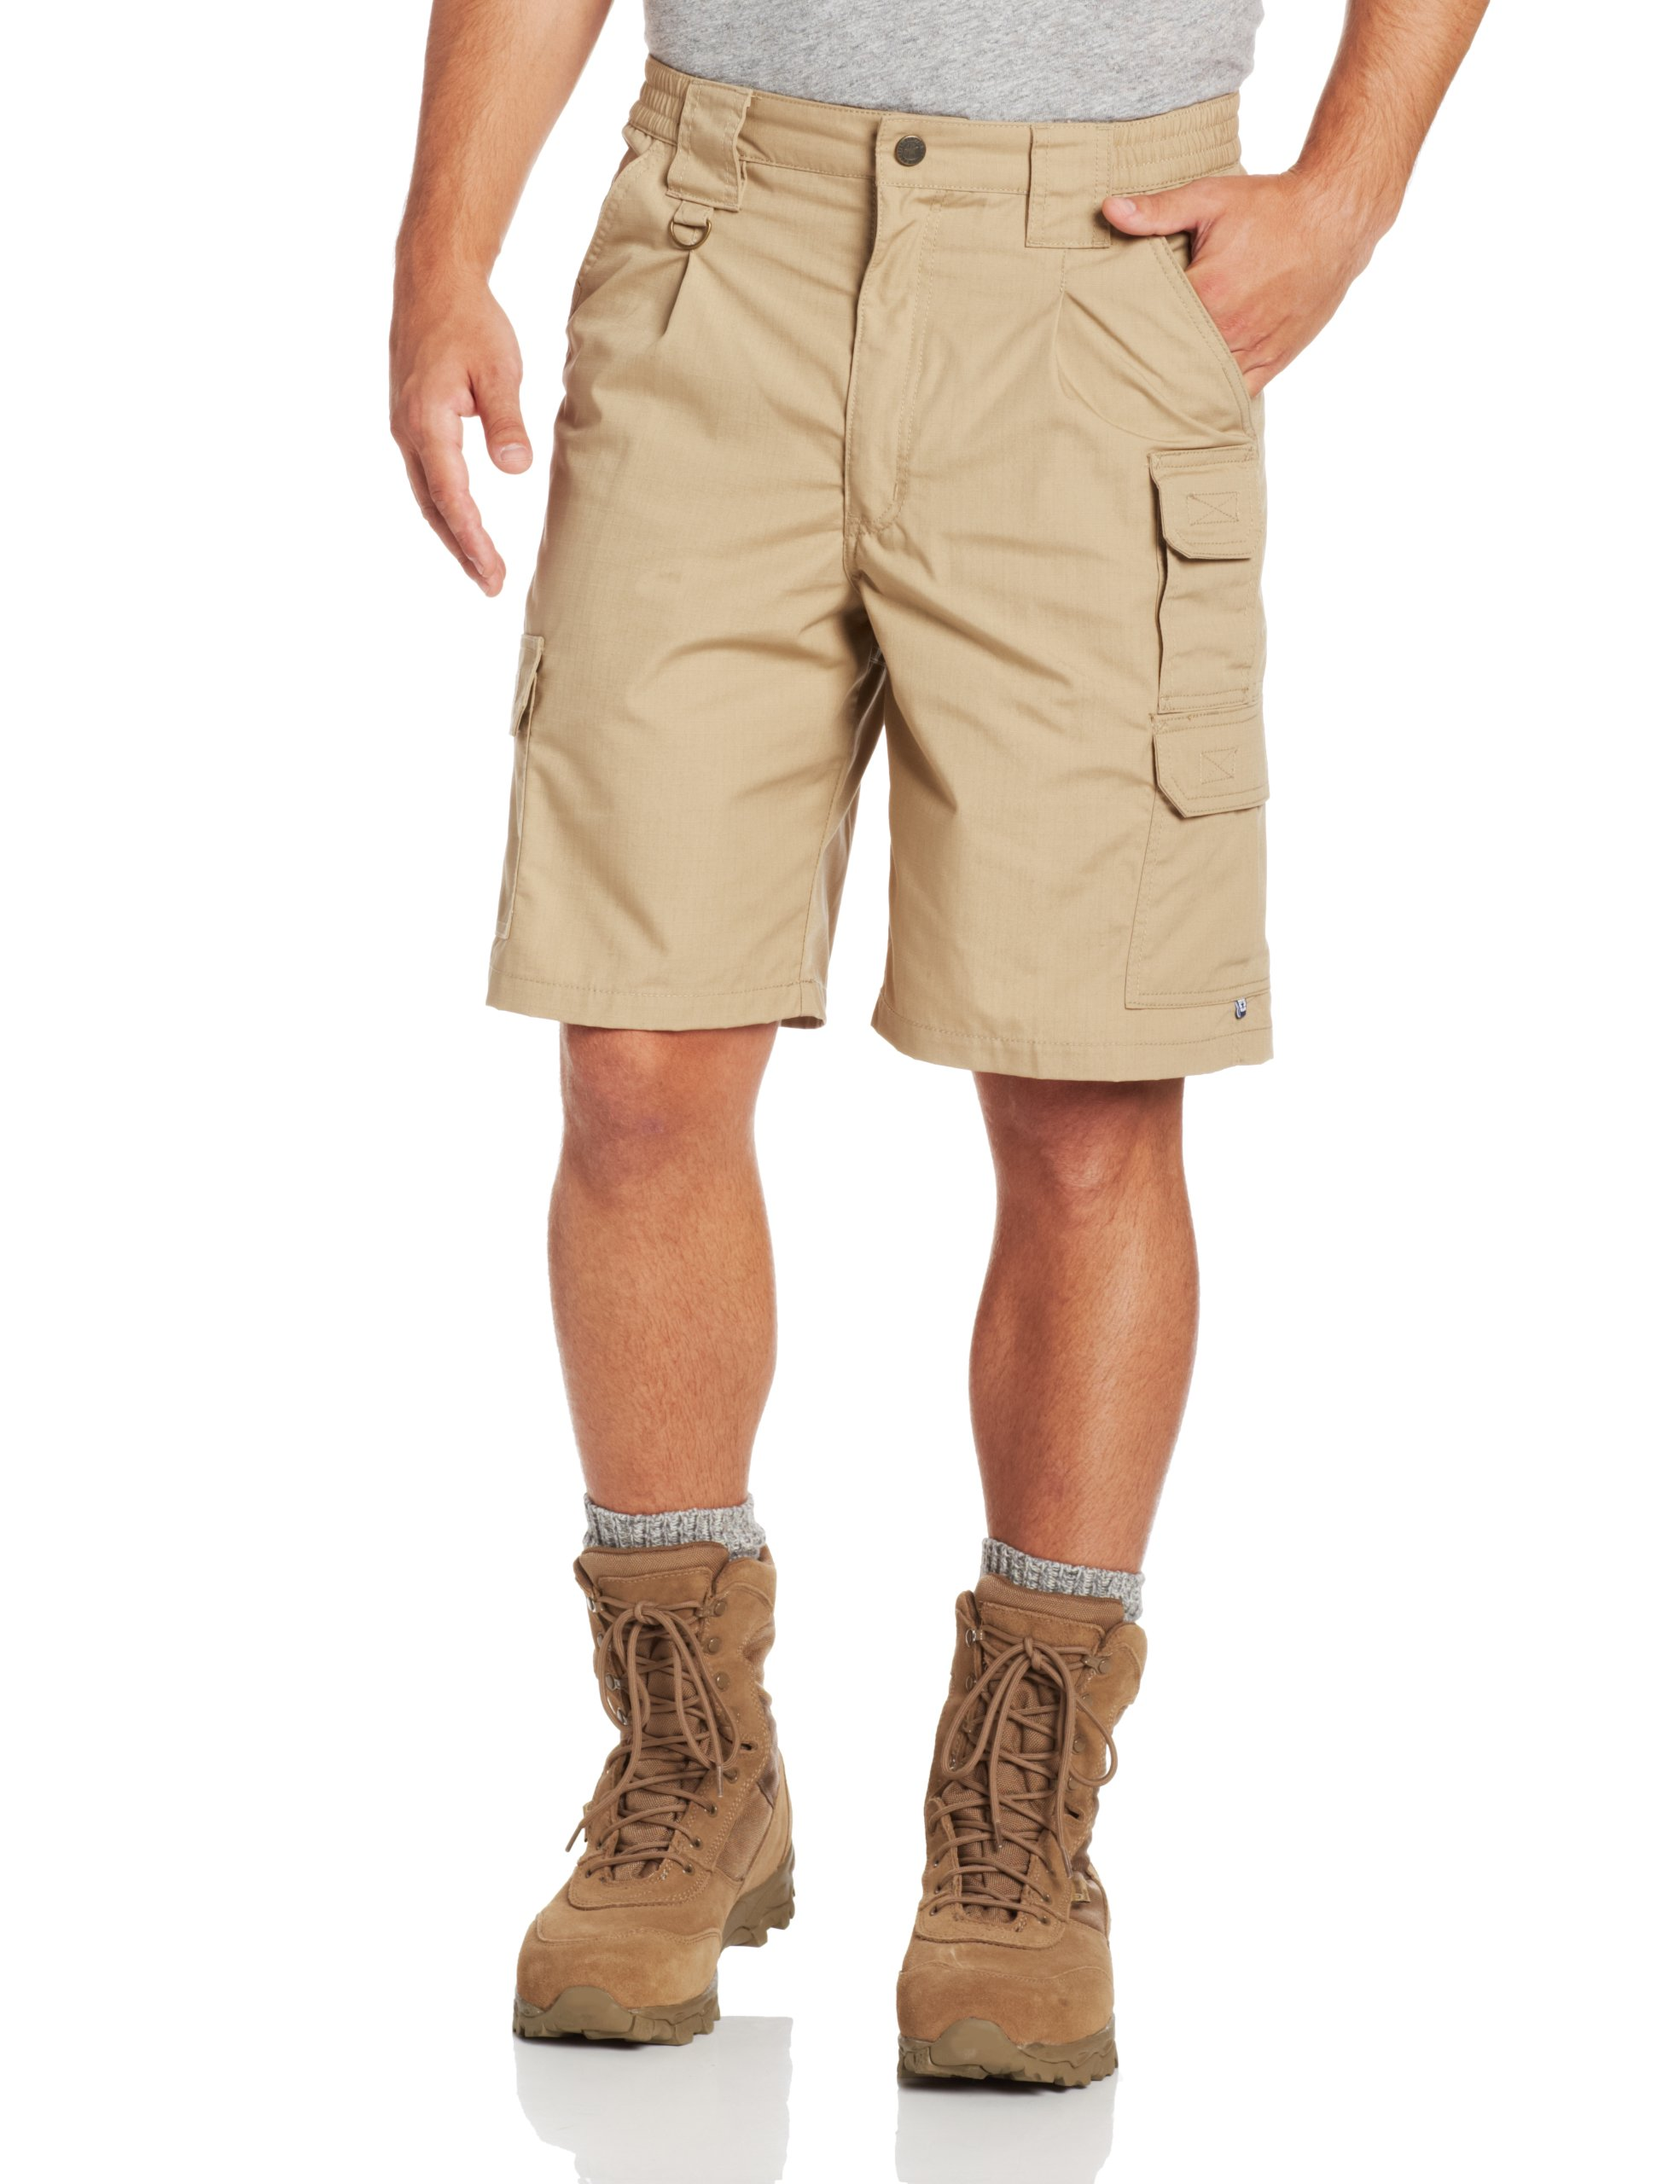 Propper Men's Tactical Short, Khaki, 34